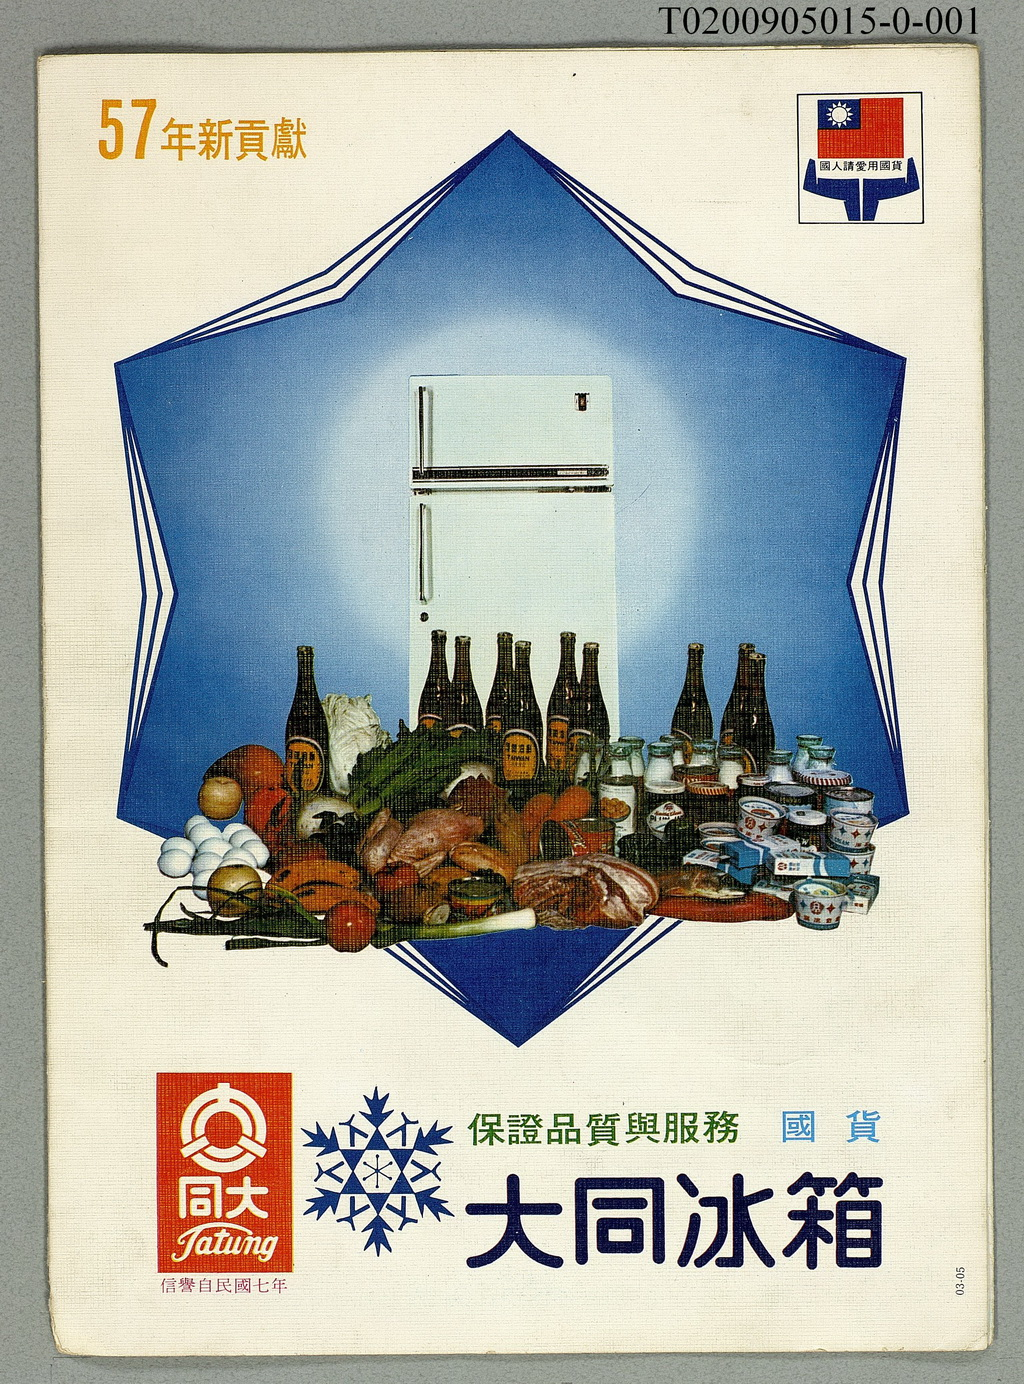 民國57年大同冰箱廣告單╱Catalogue of Tatung Refrigirator (1968)